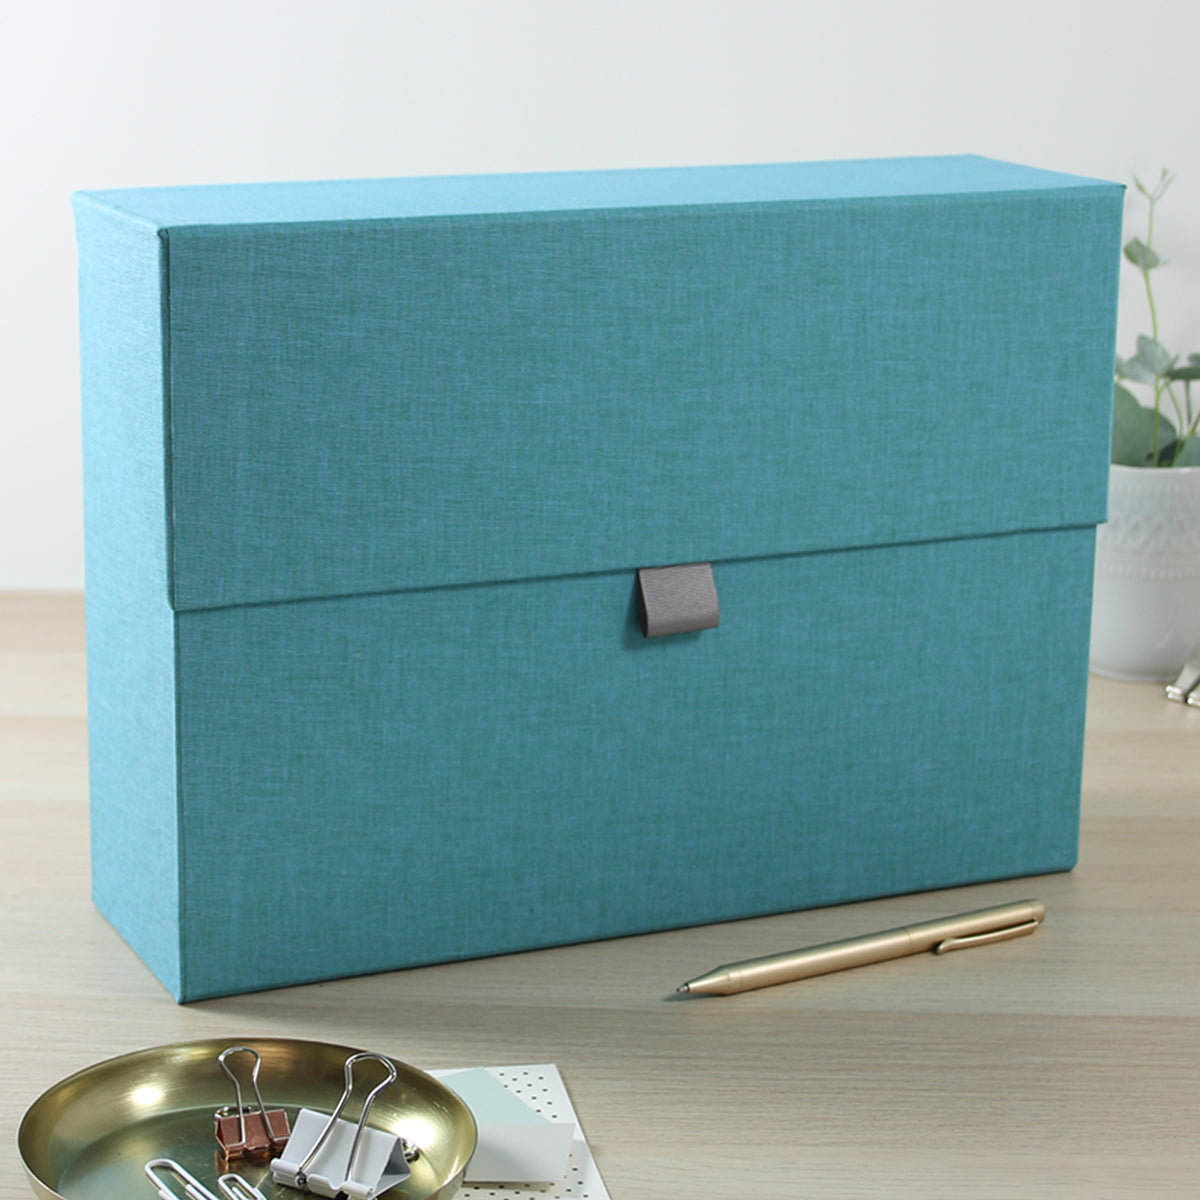 Organiser Boxes - Fabric